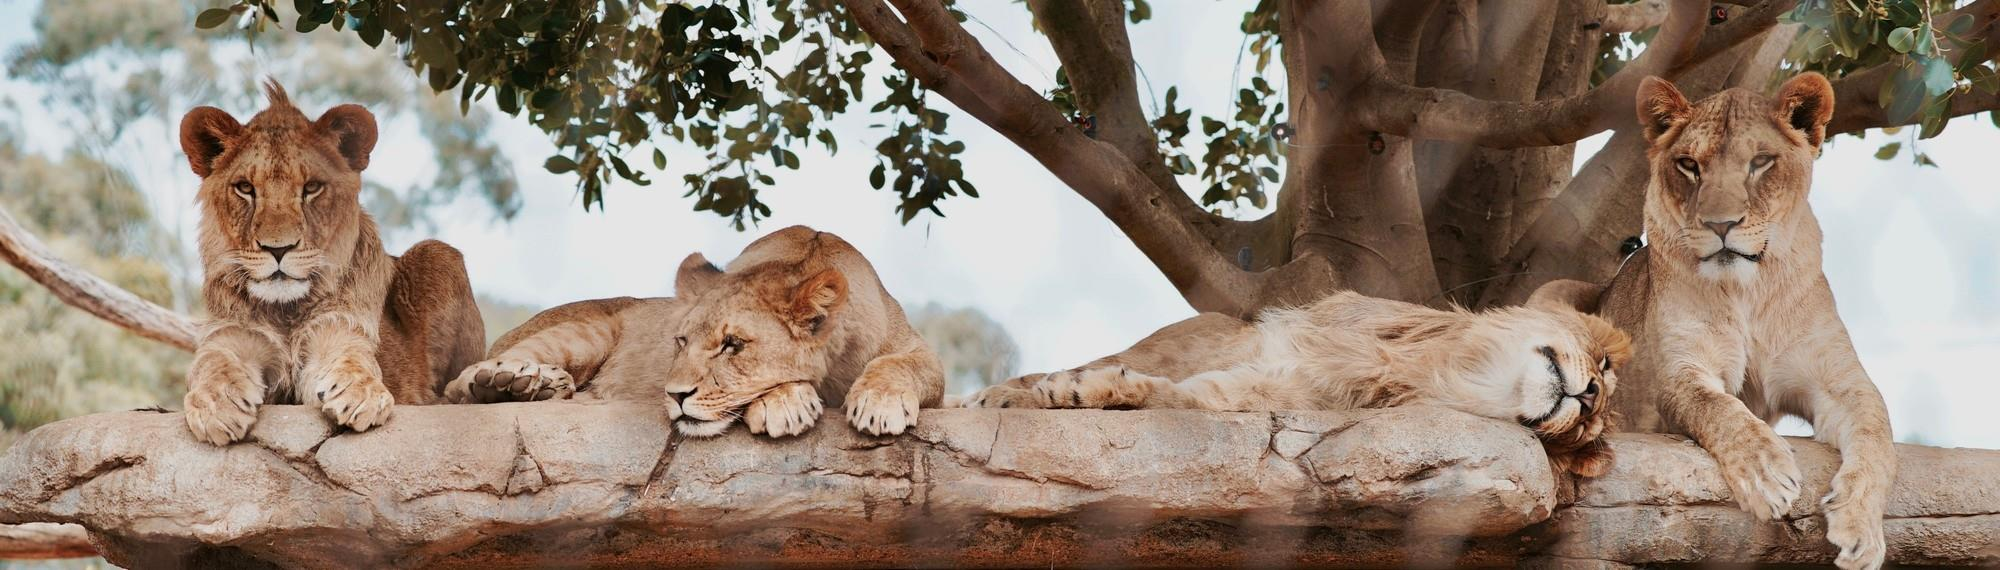 Four lion siblings relaxing on a rock under the shade of a big tree